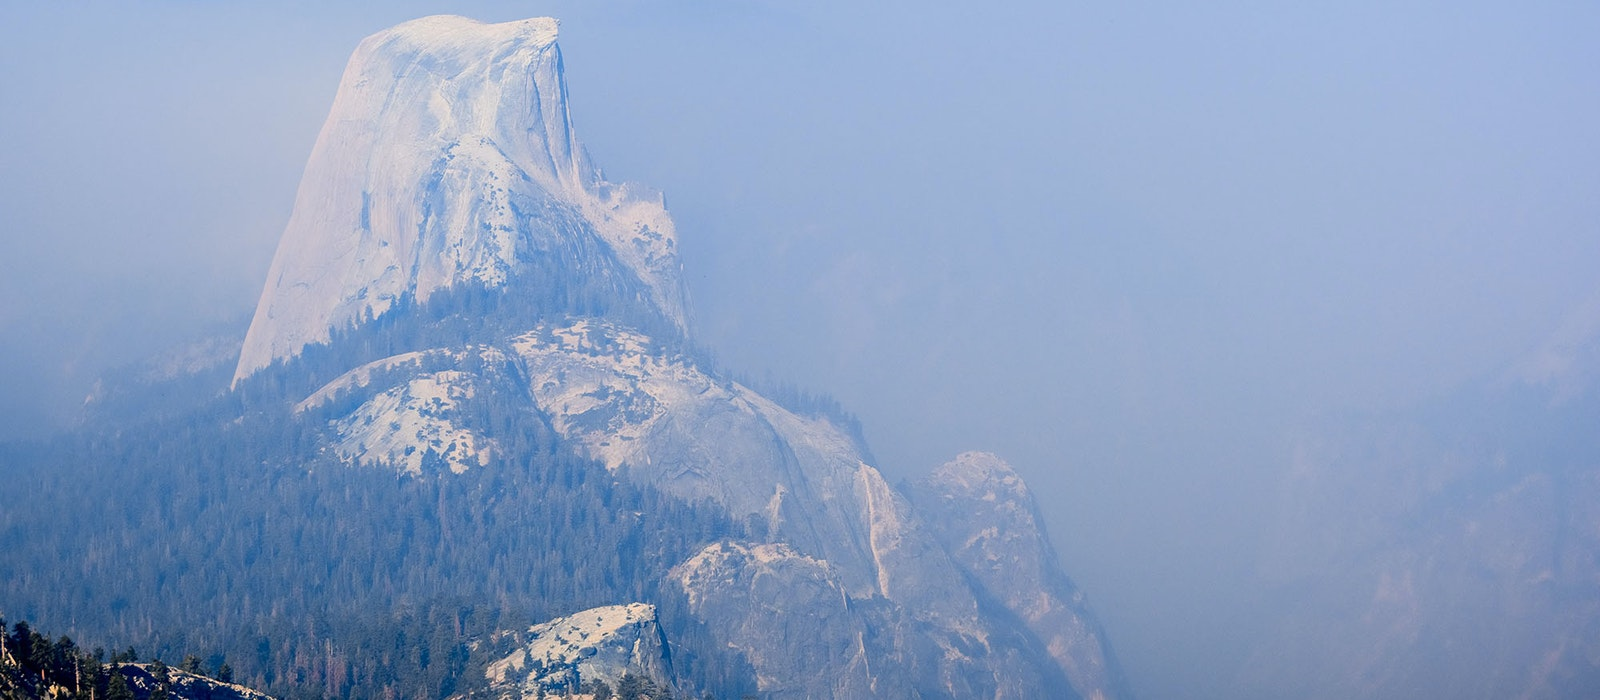 Original yosemite closed wildfires half 20dome shutterstock.jpg?1532538900?ixlib=rails 0.3